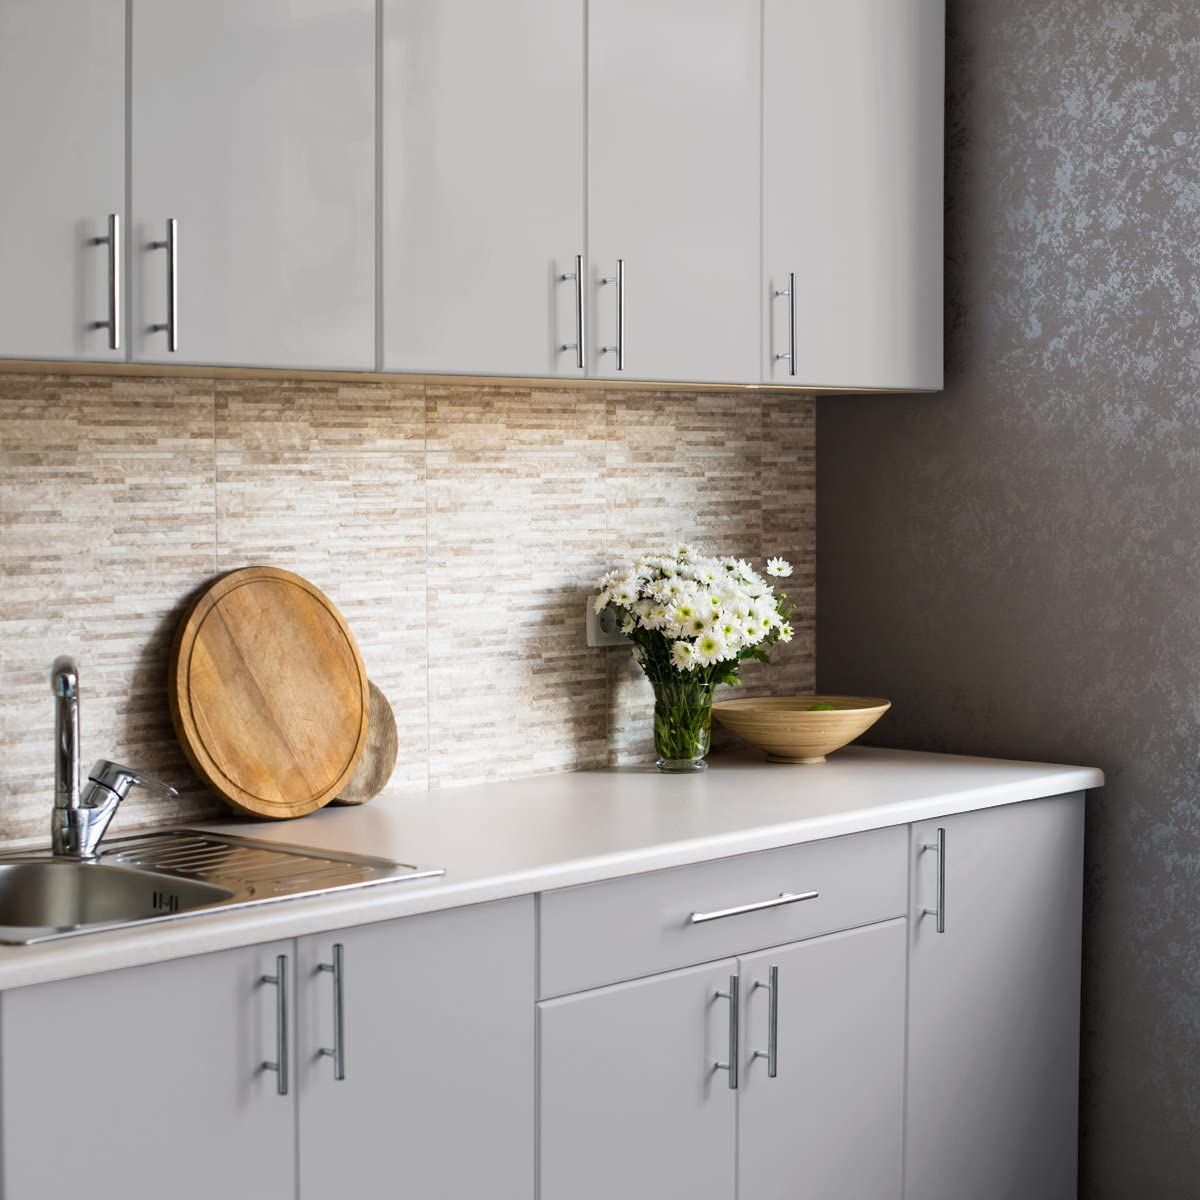 Best paint for kitchen cabinets: give your kitchen an easy DIY refresh